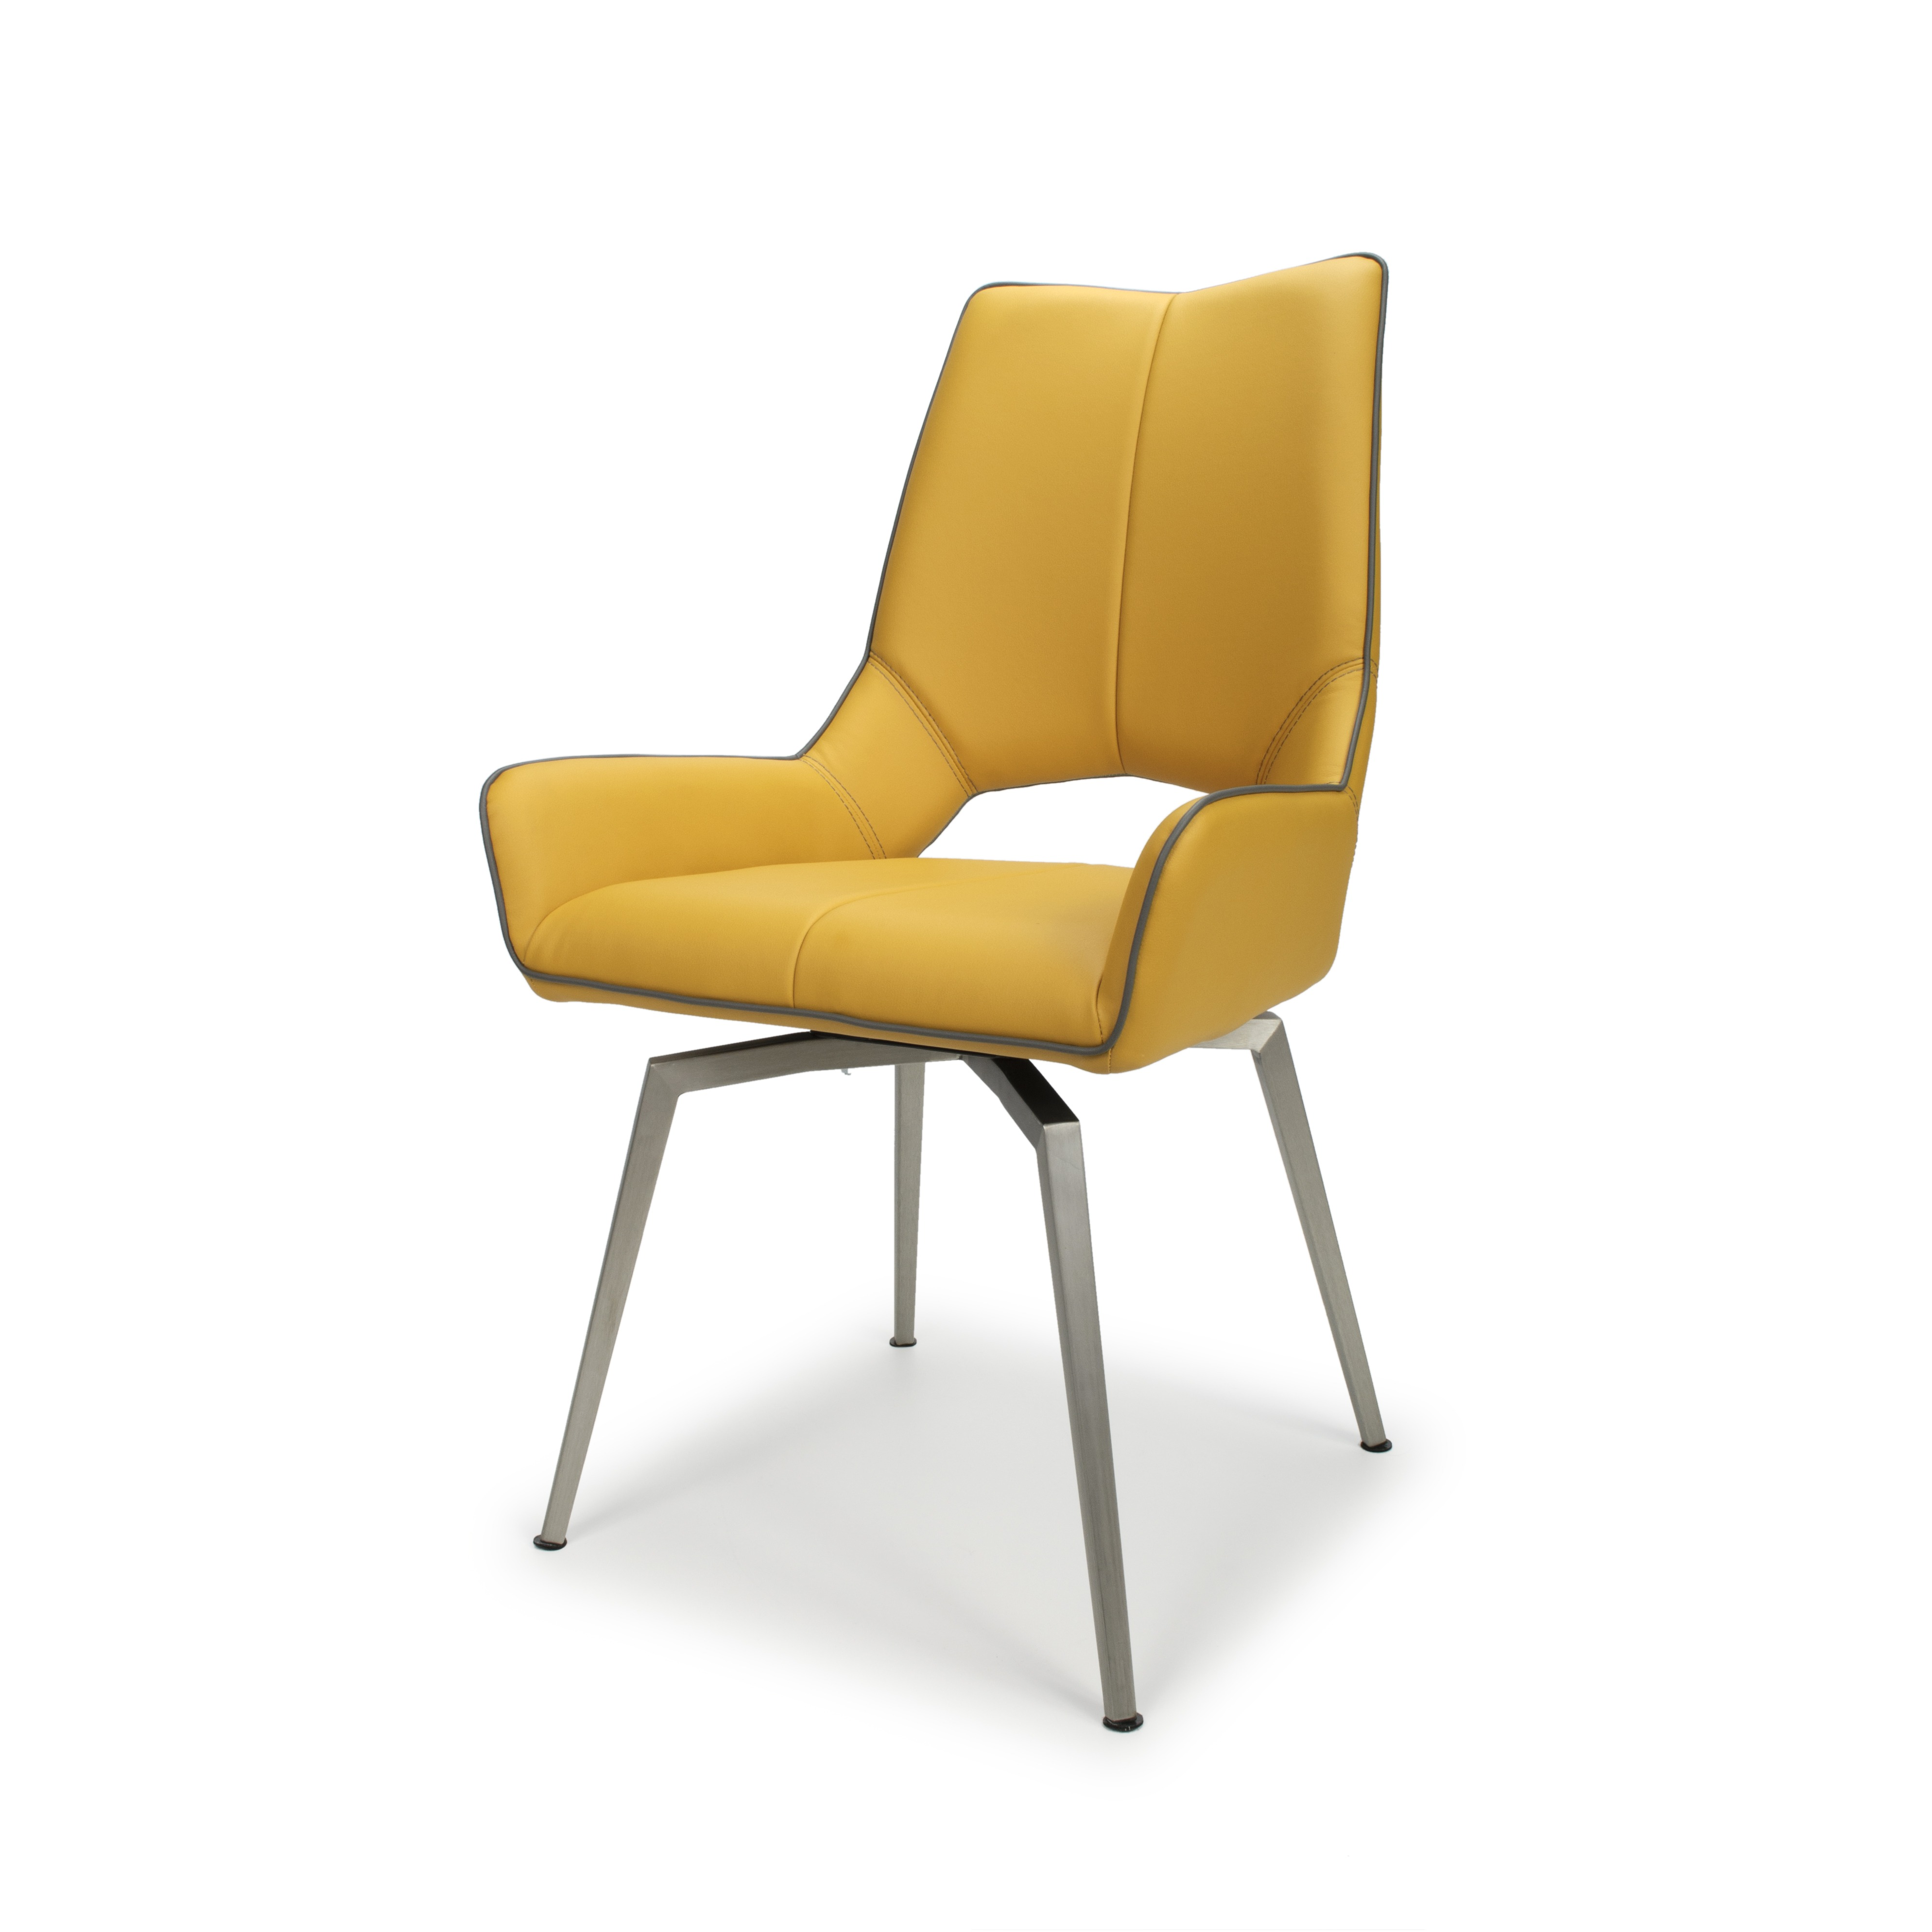 Astra swivel yellow leather dining chair lightbox · lightbox